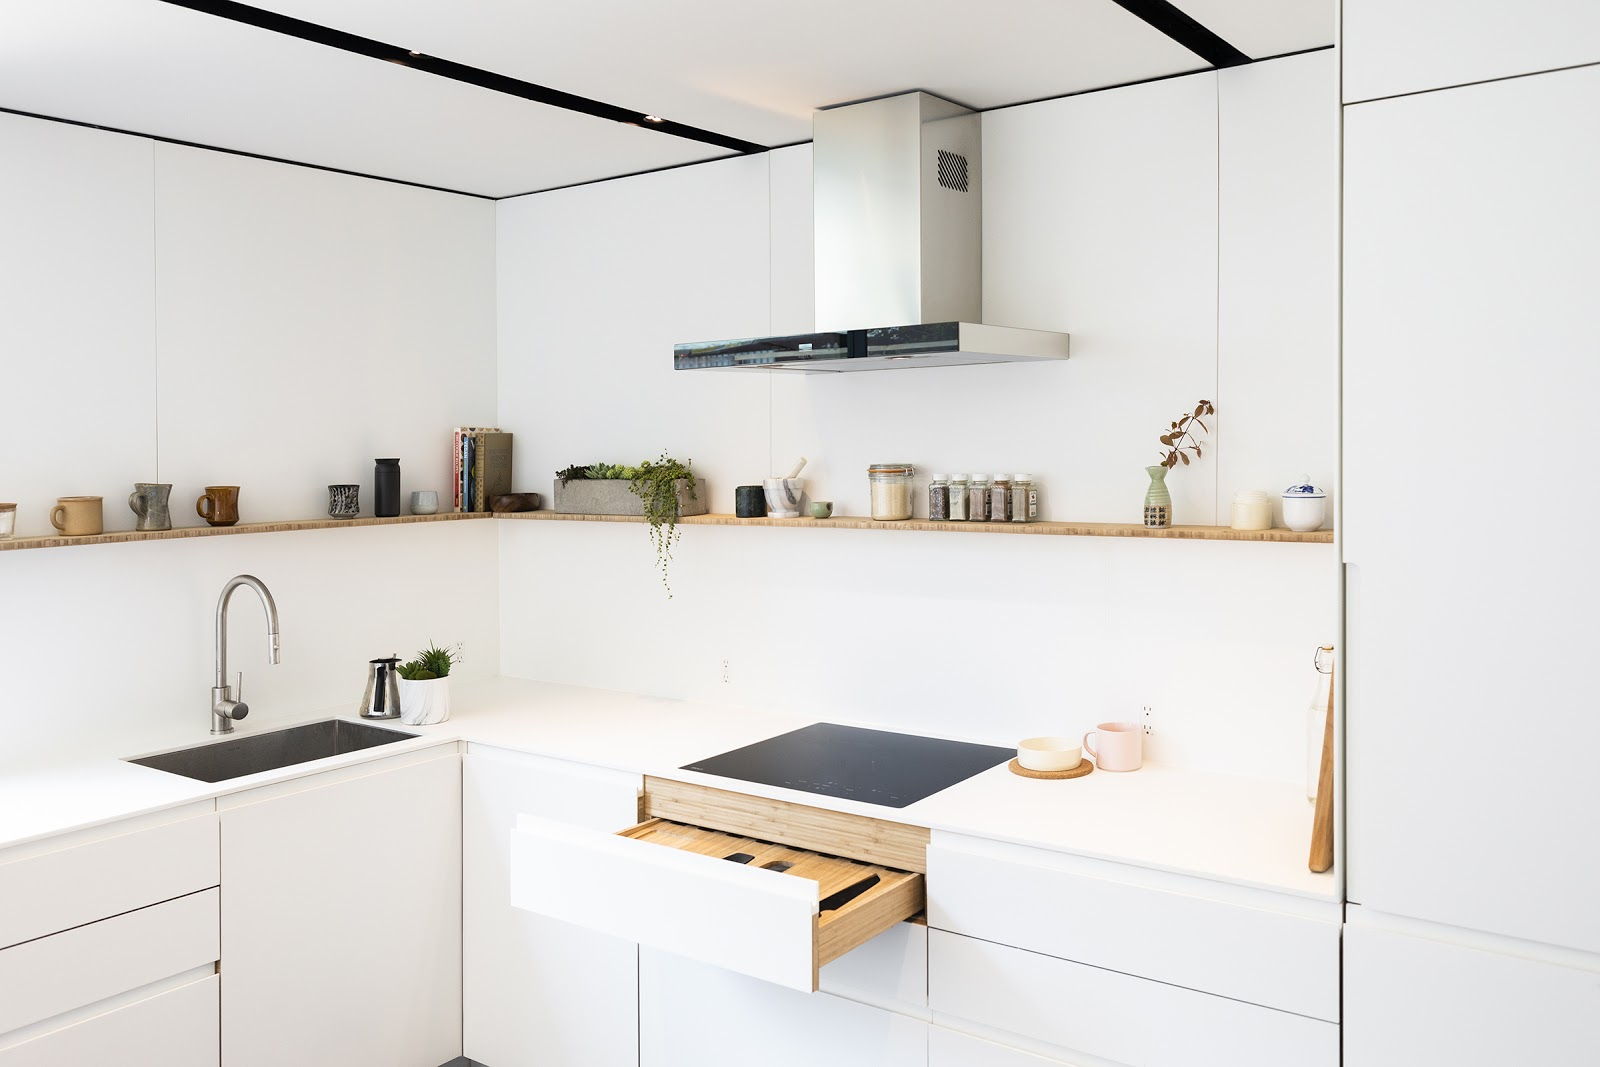 Cover's bamboo kitchen cabinetry finished with a white solid surface material